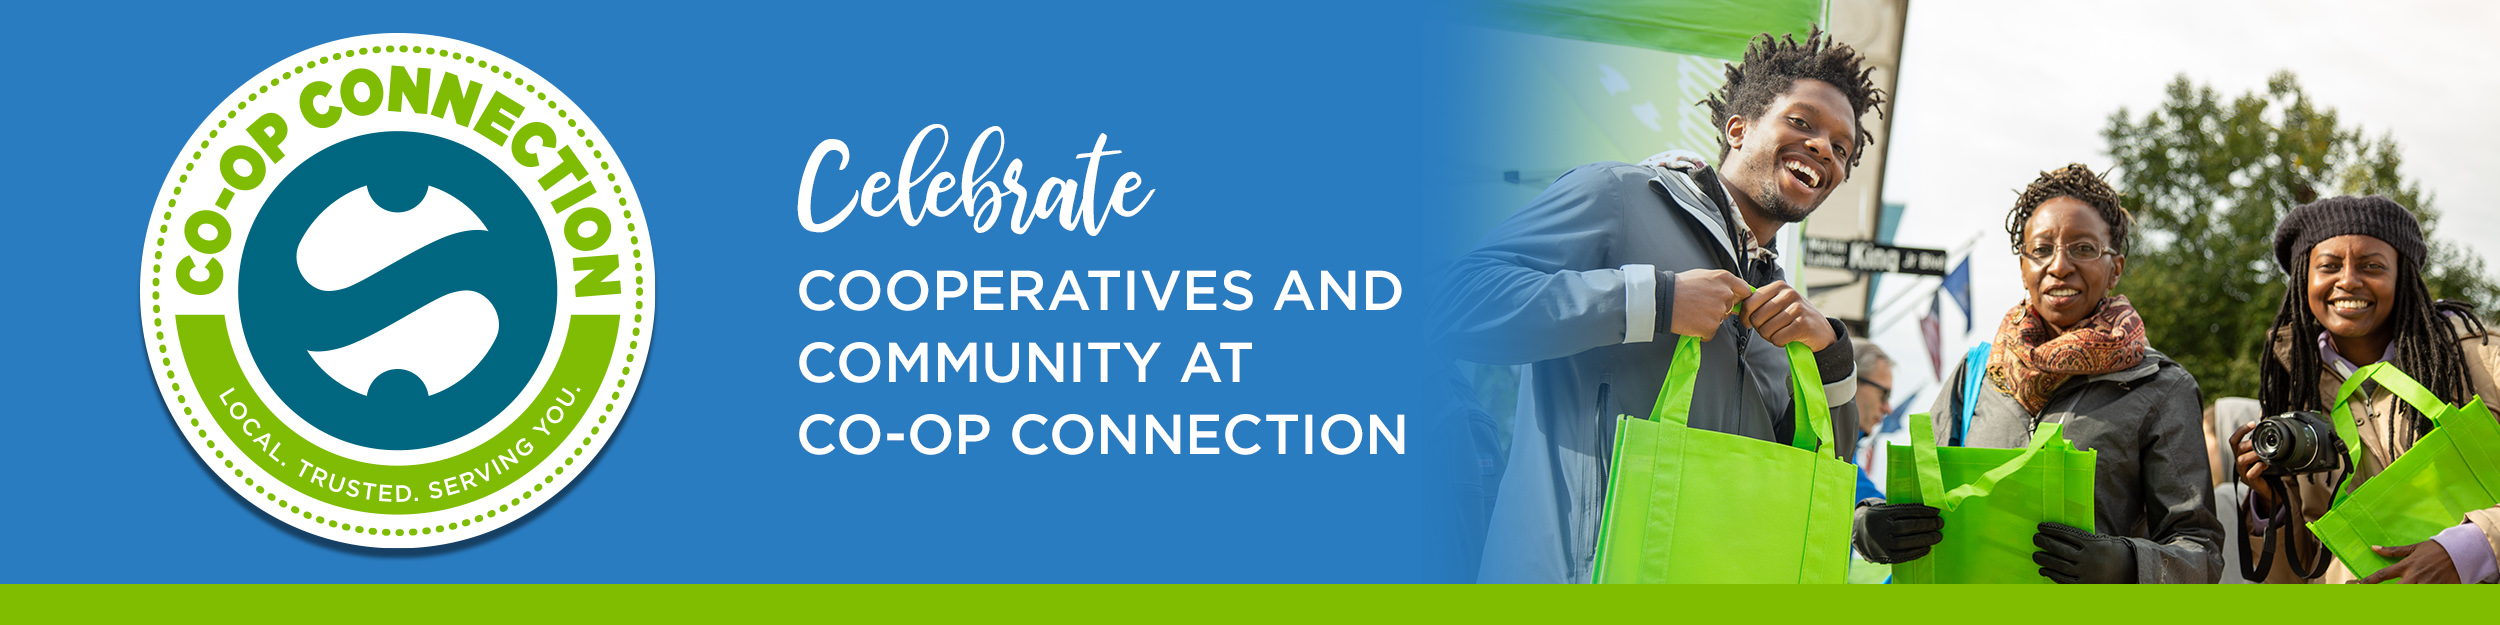 Celebrate Cooperatives and Community at Co-op Connection